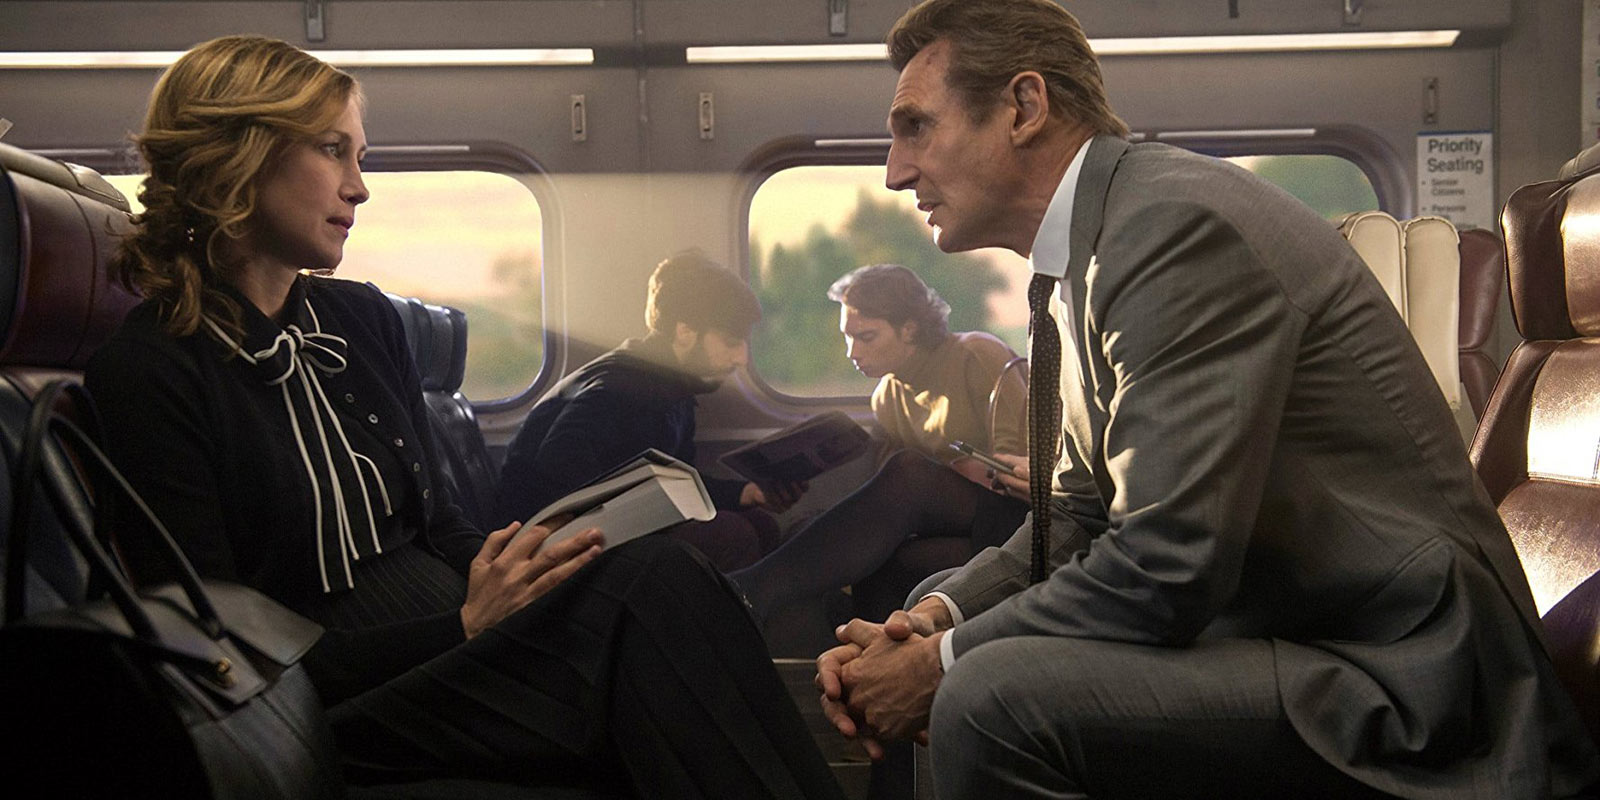 Sneak Review 97 – The Commuter